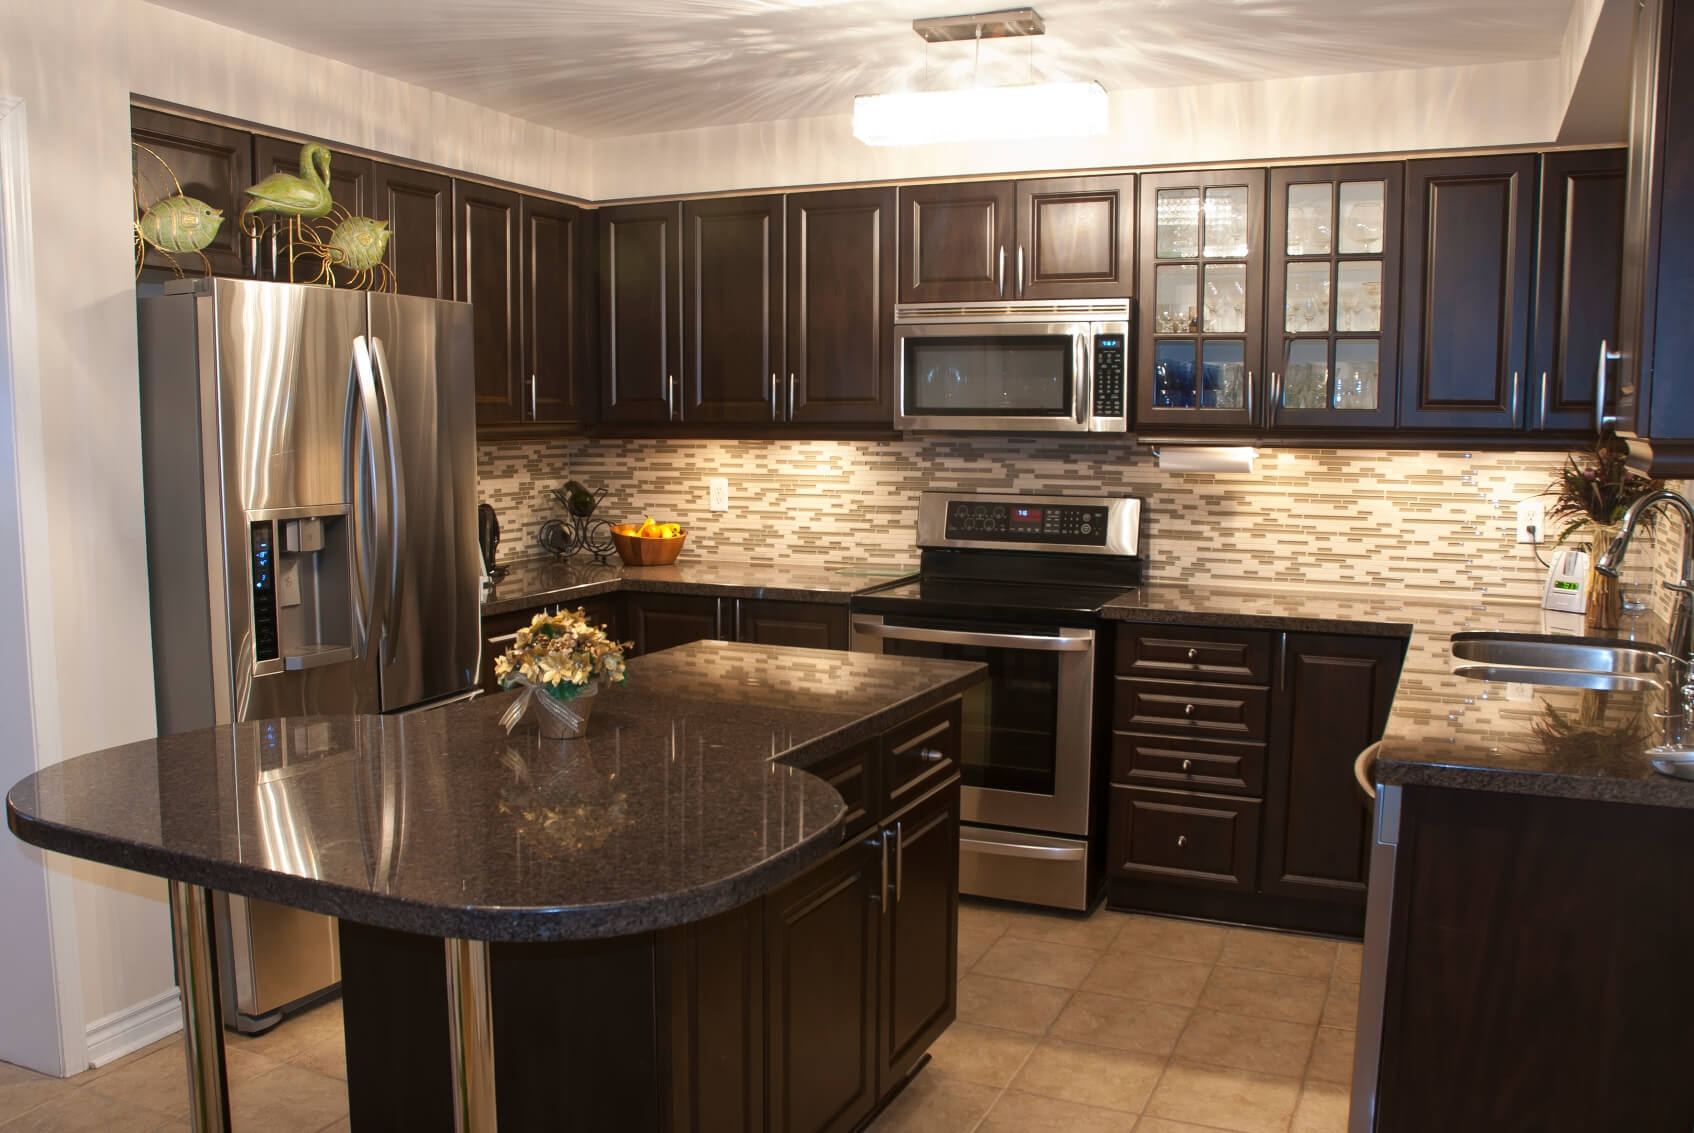 Hardware Ideas For Dark Kitchen Cabinets